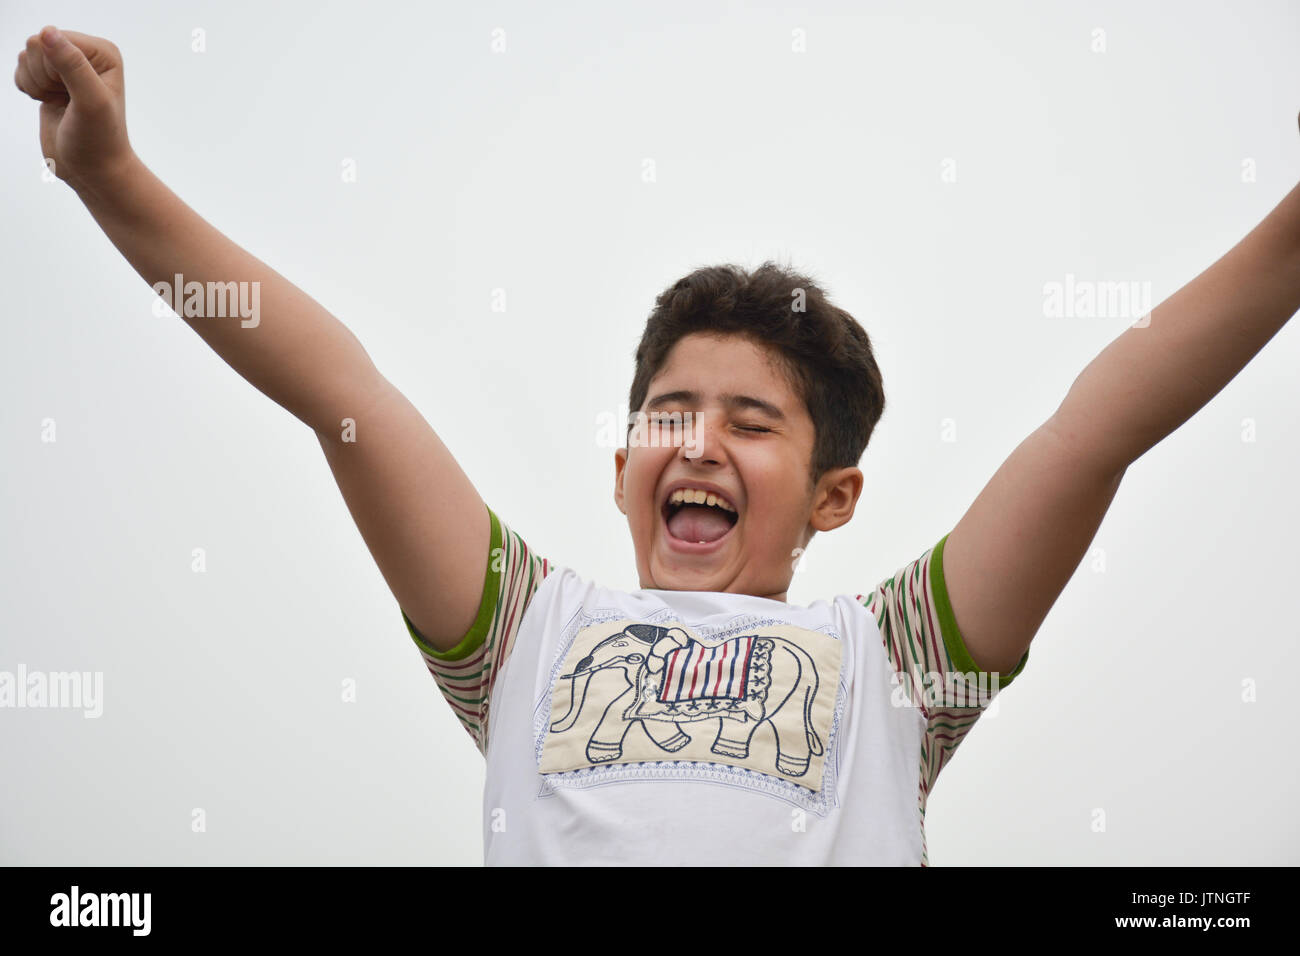 A Child Expressing How Happy He is! - Stock Image